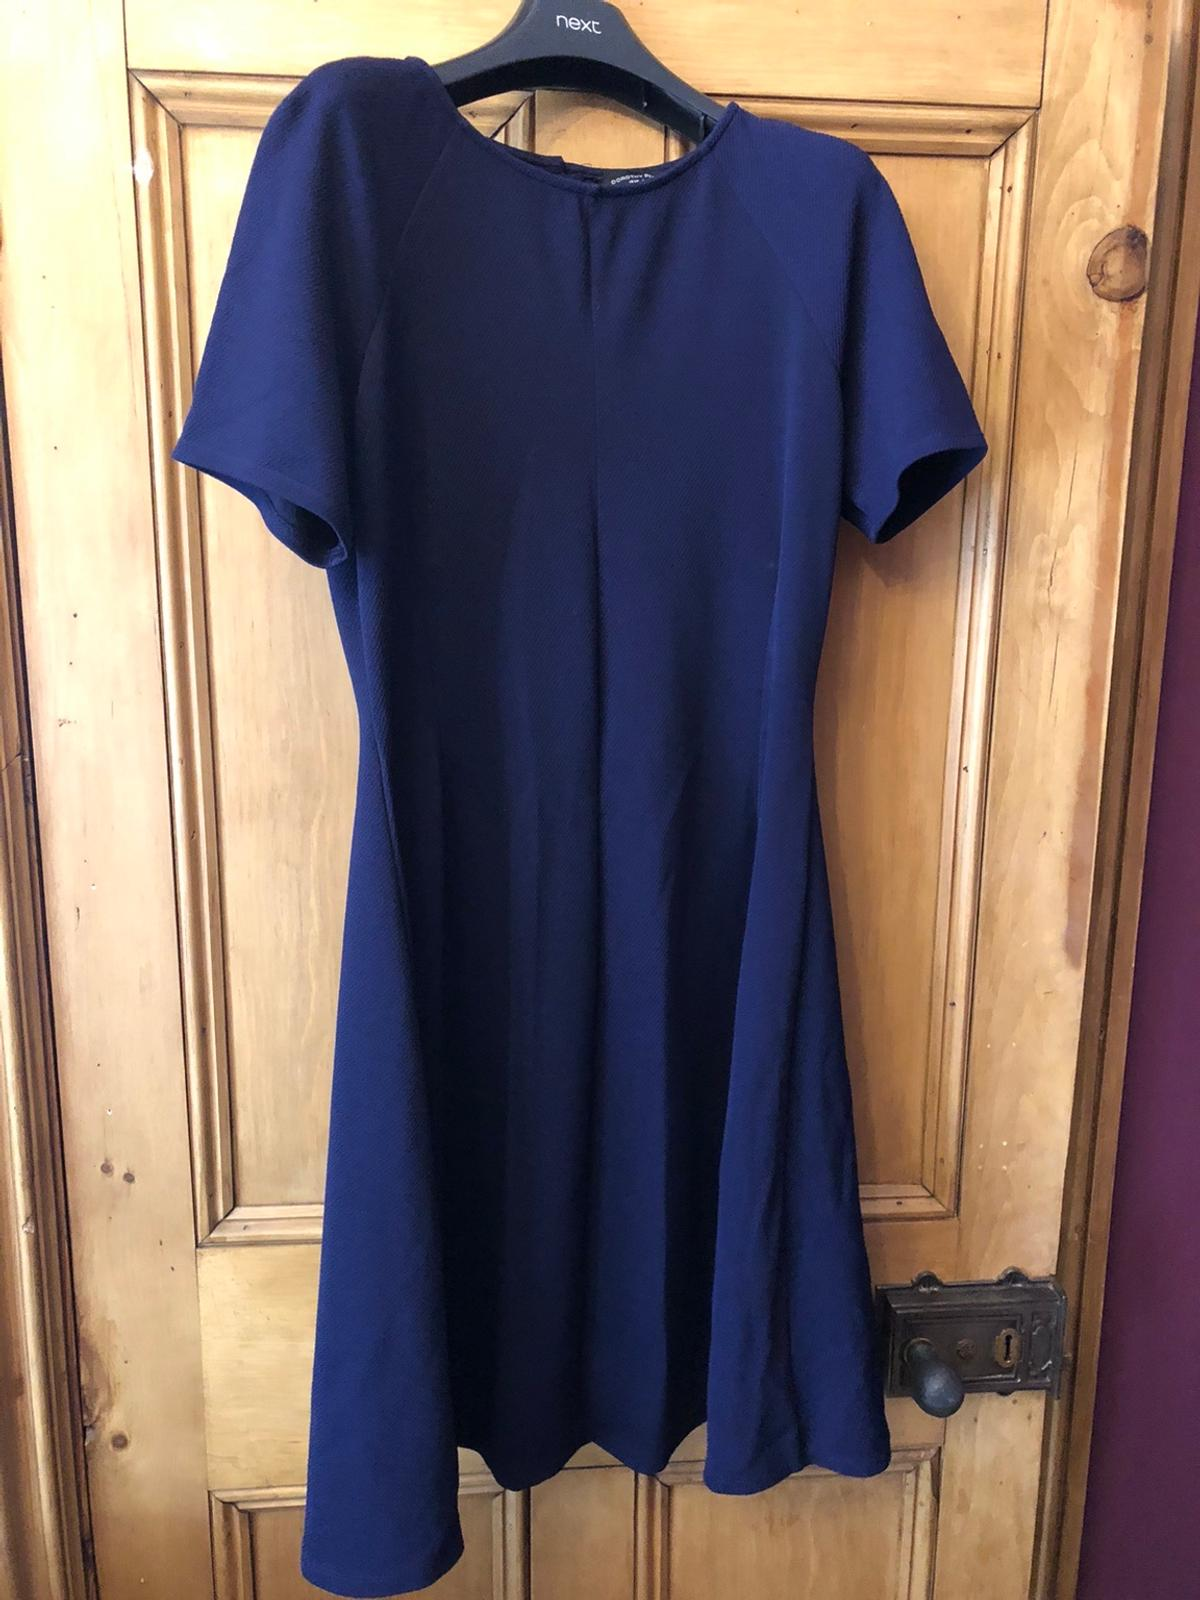 Gorgeous Navy Skater Dress Size 16.  Really flattering on just skins your curves.  Condition is Used (barley worn)  I'm having a massive dress clear out so please check out my other items  Pet and smoke free home  Dispatched with Royal Mail 2nd Class.